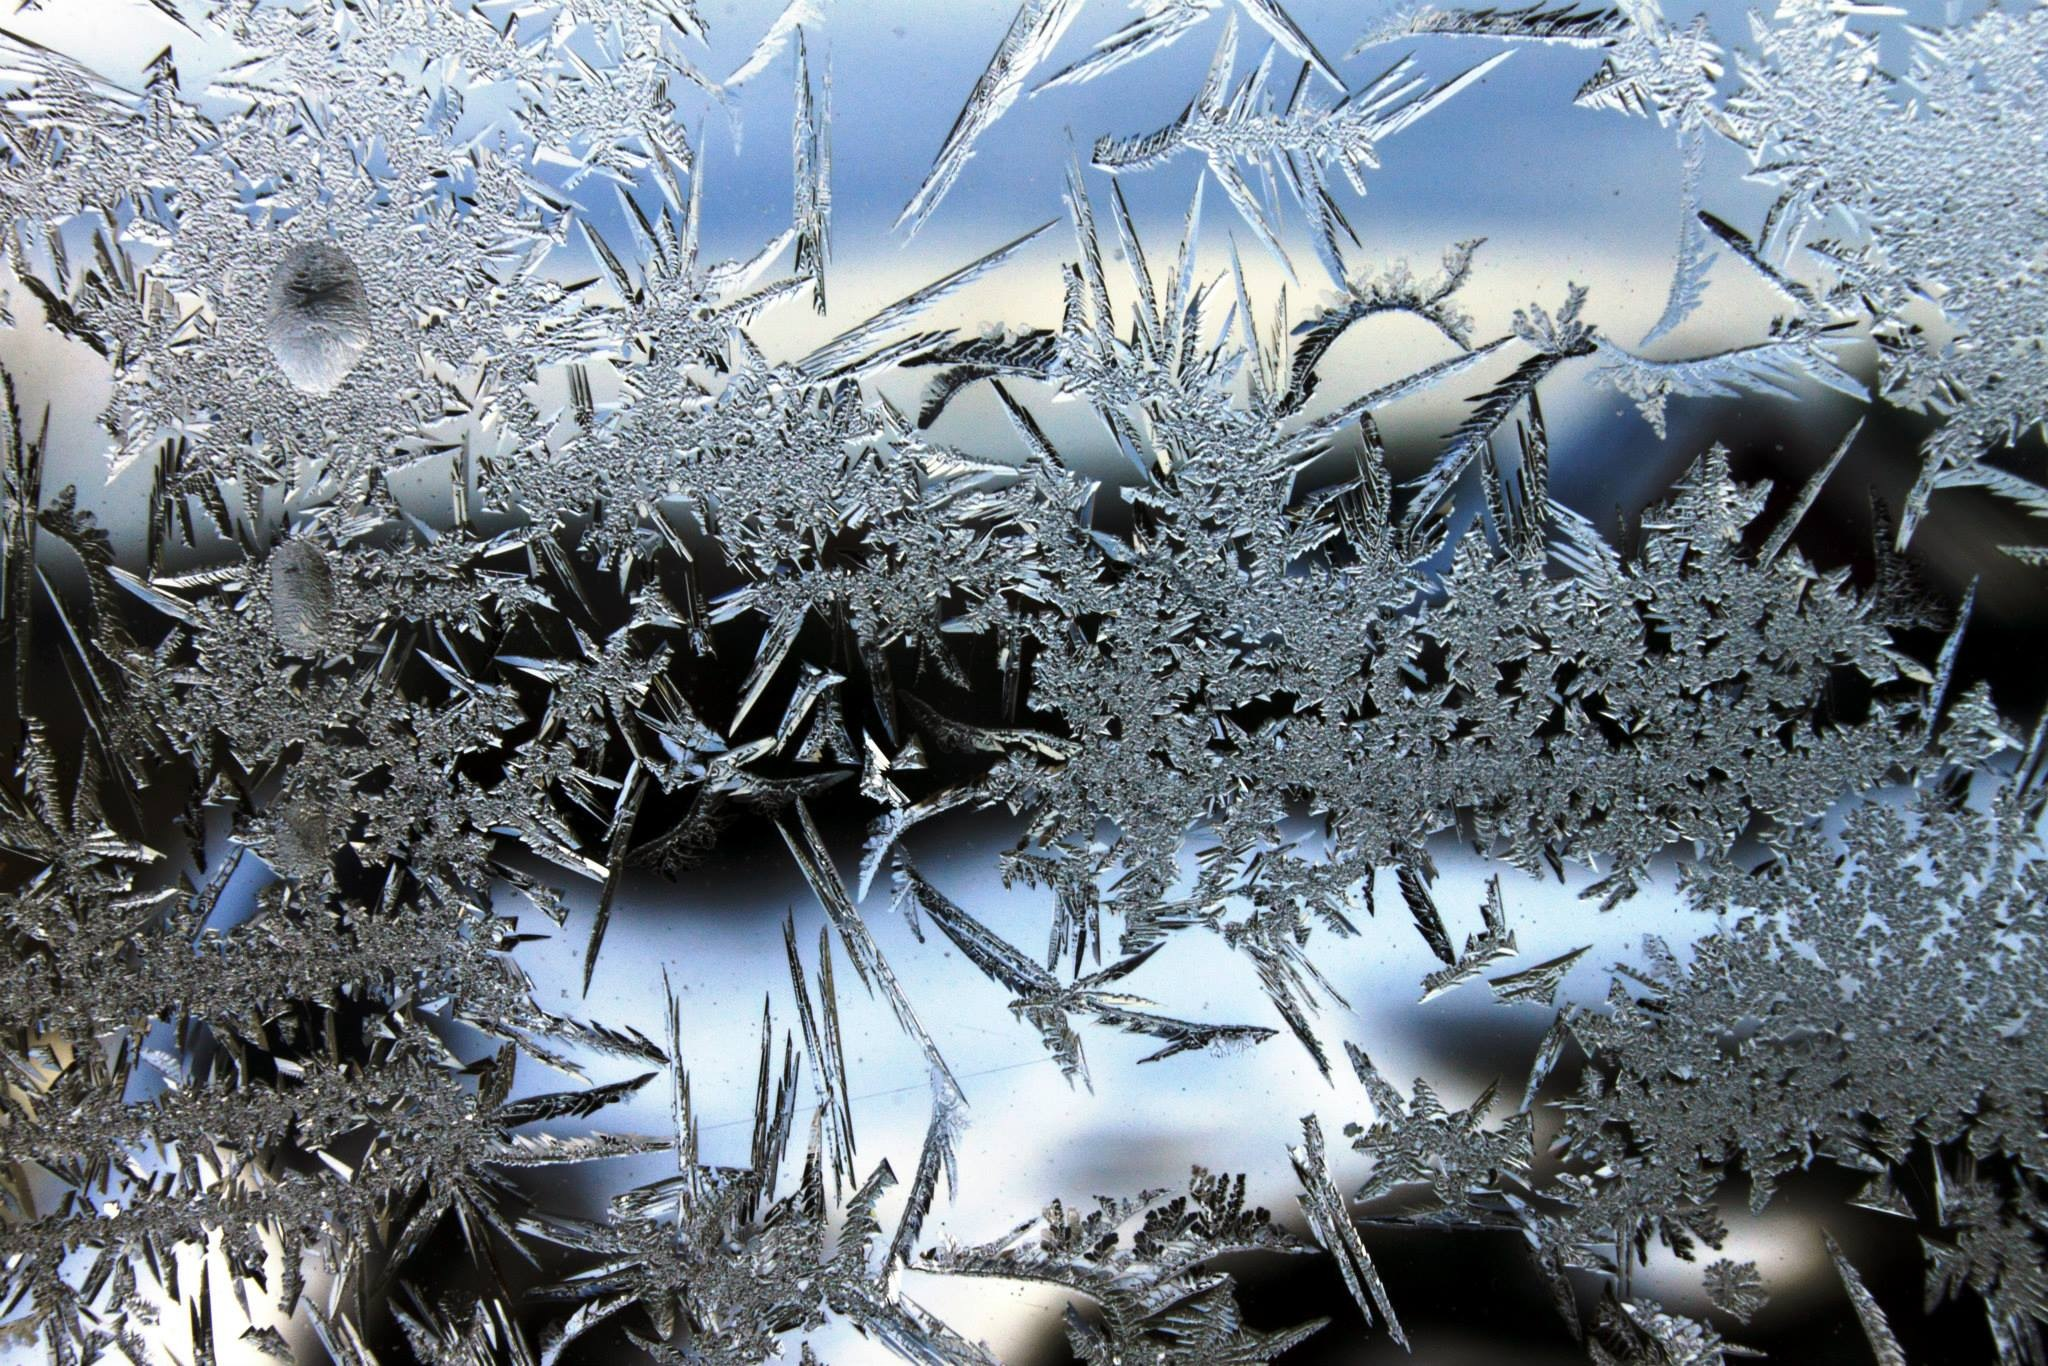 brrrou............ c'est froid ; Frost on the window by .